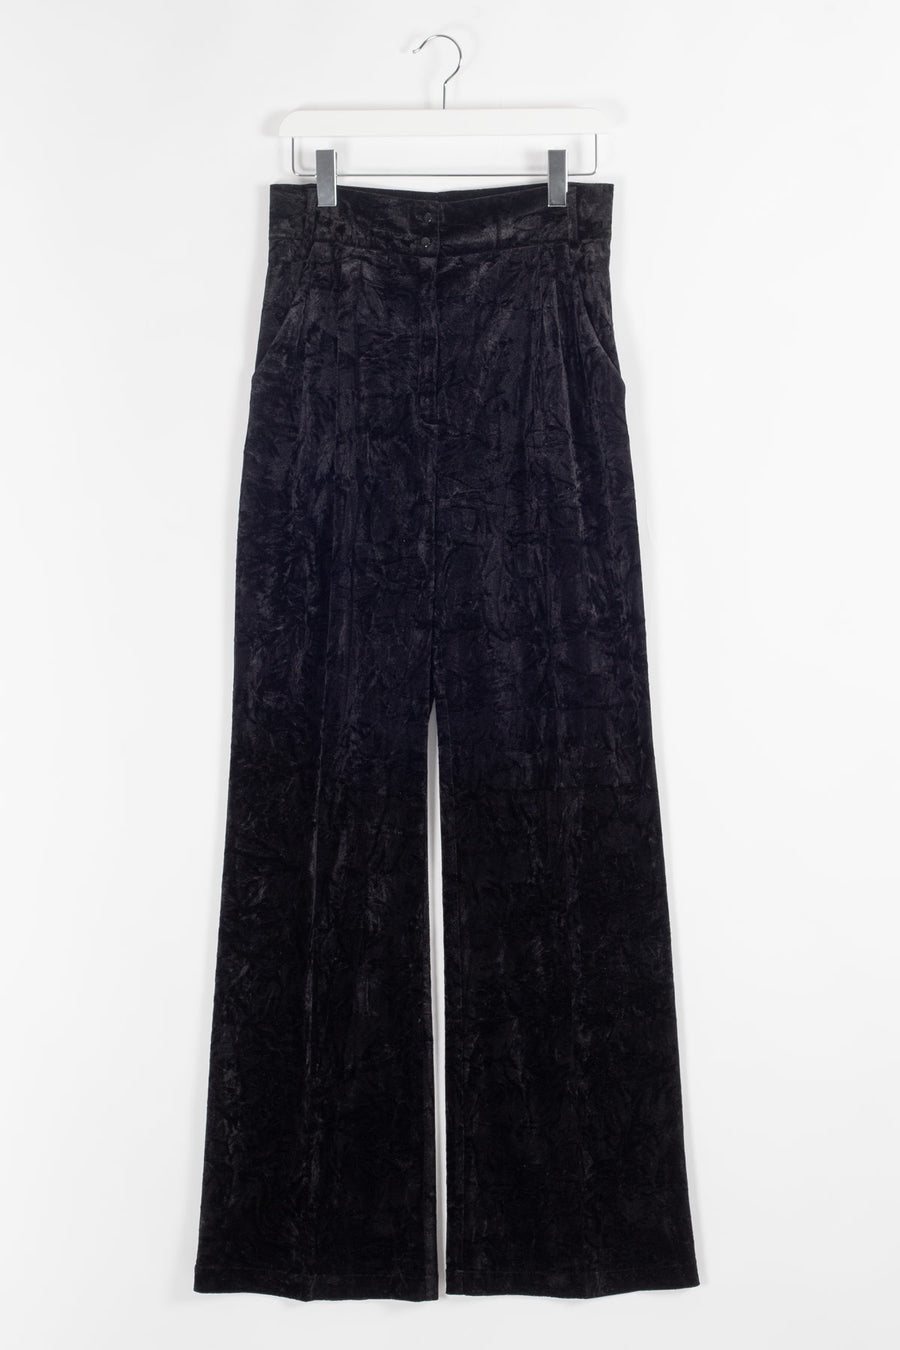 ELISE Highwaisted Wide Velvet Trousers - Black